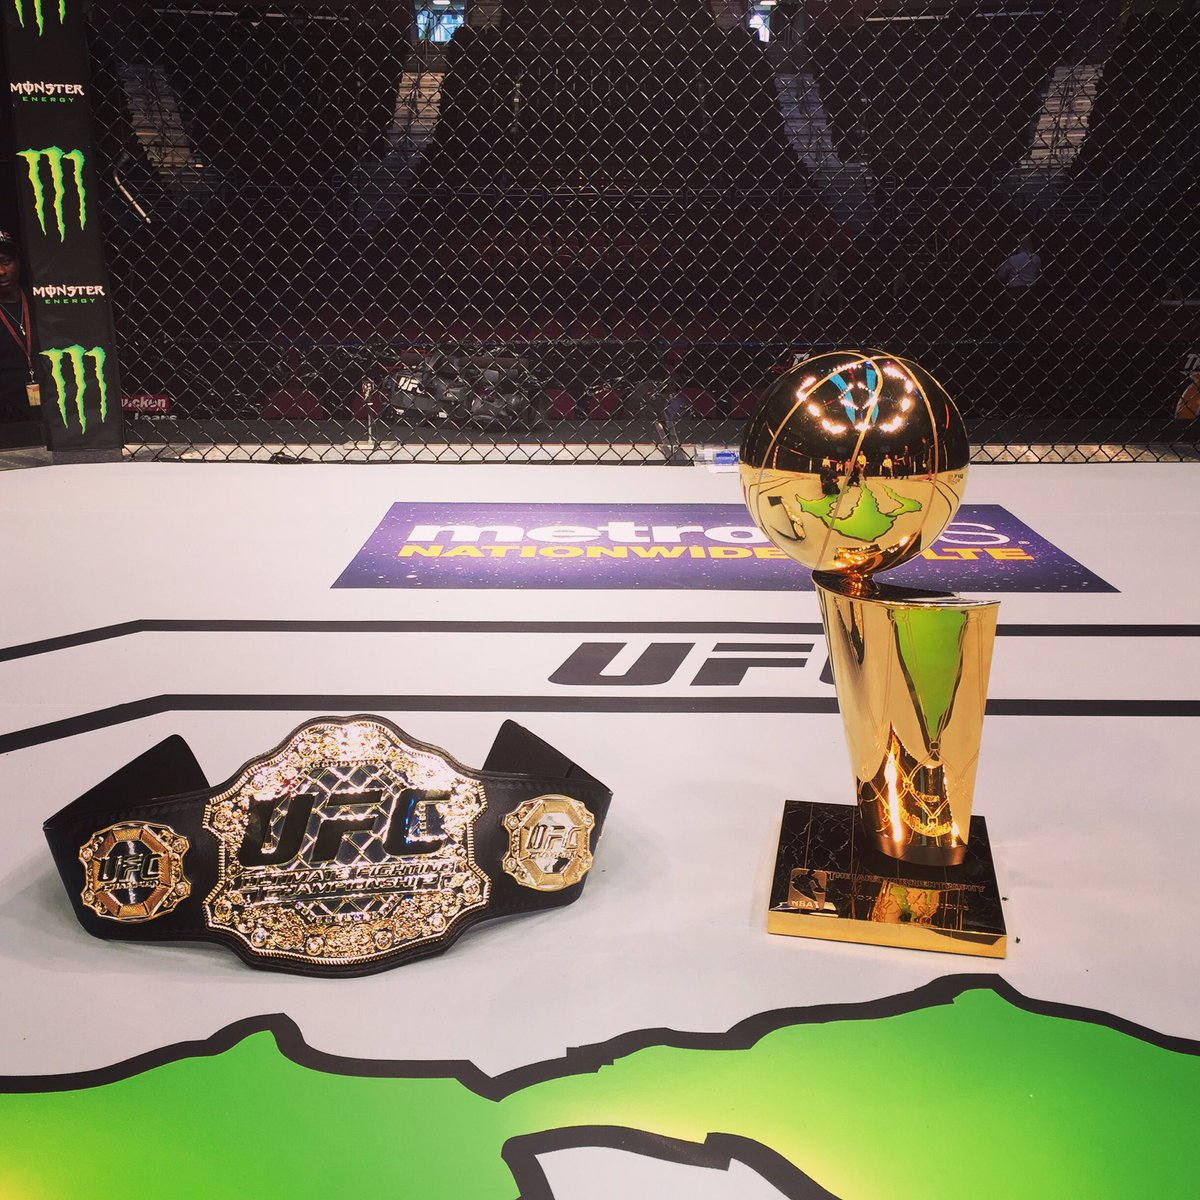 #UFC203 taking place in the City of Champions @ufc https://t.co/O3lAFXCWvE